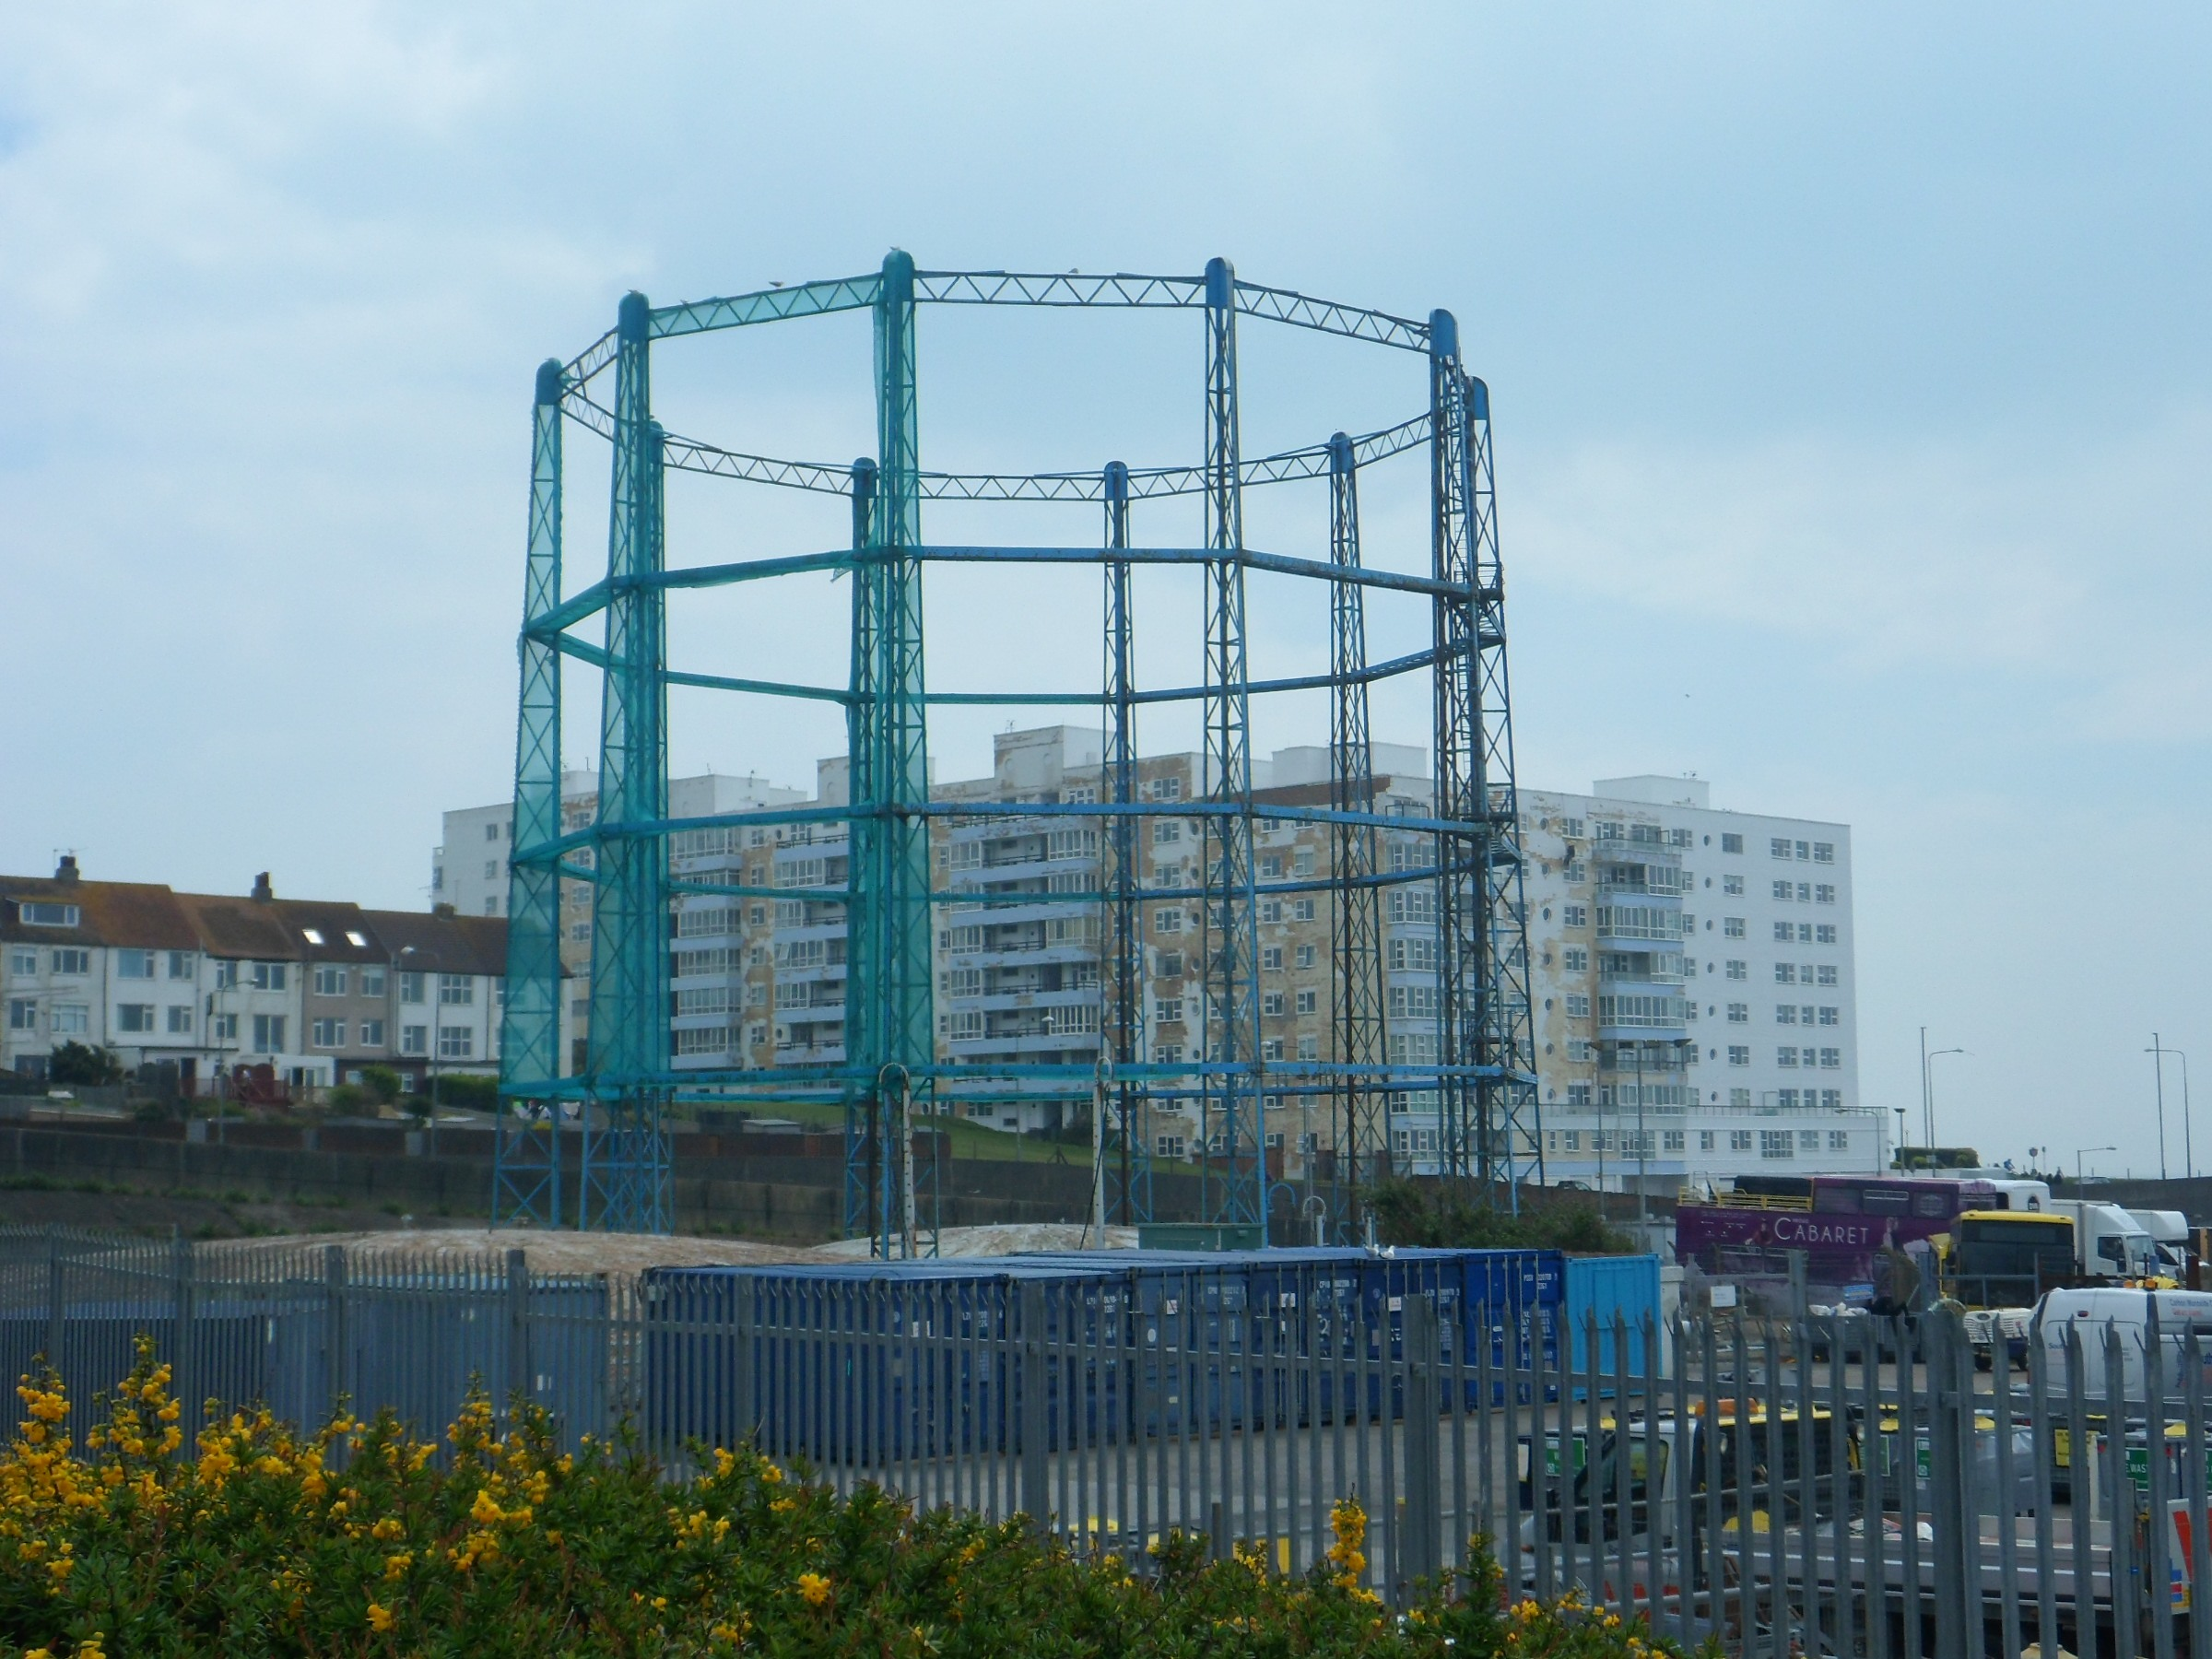 File:Gasholder at former Black Rock Gasworks, Boundary Road, Brighton (May 2013) (2).JPG